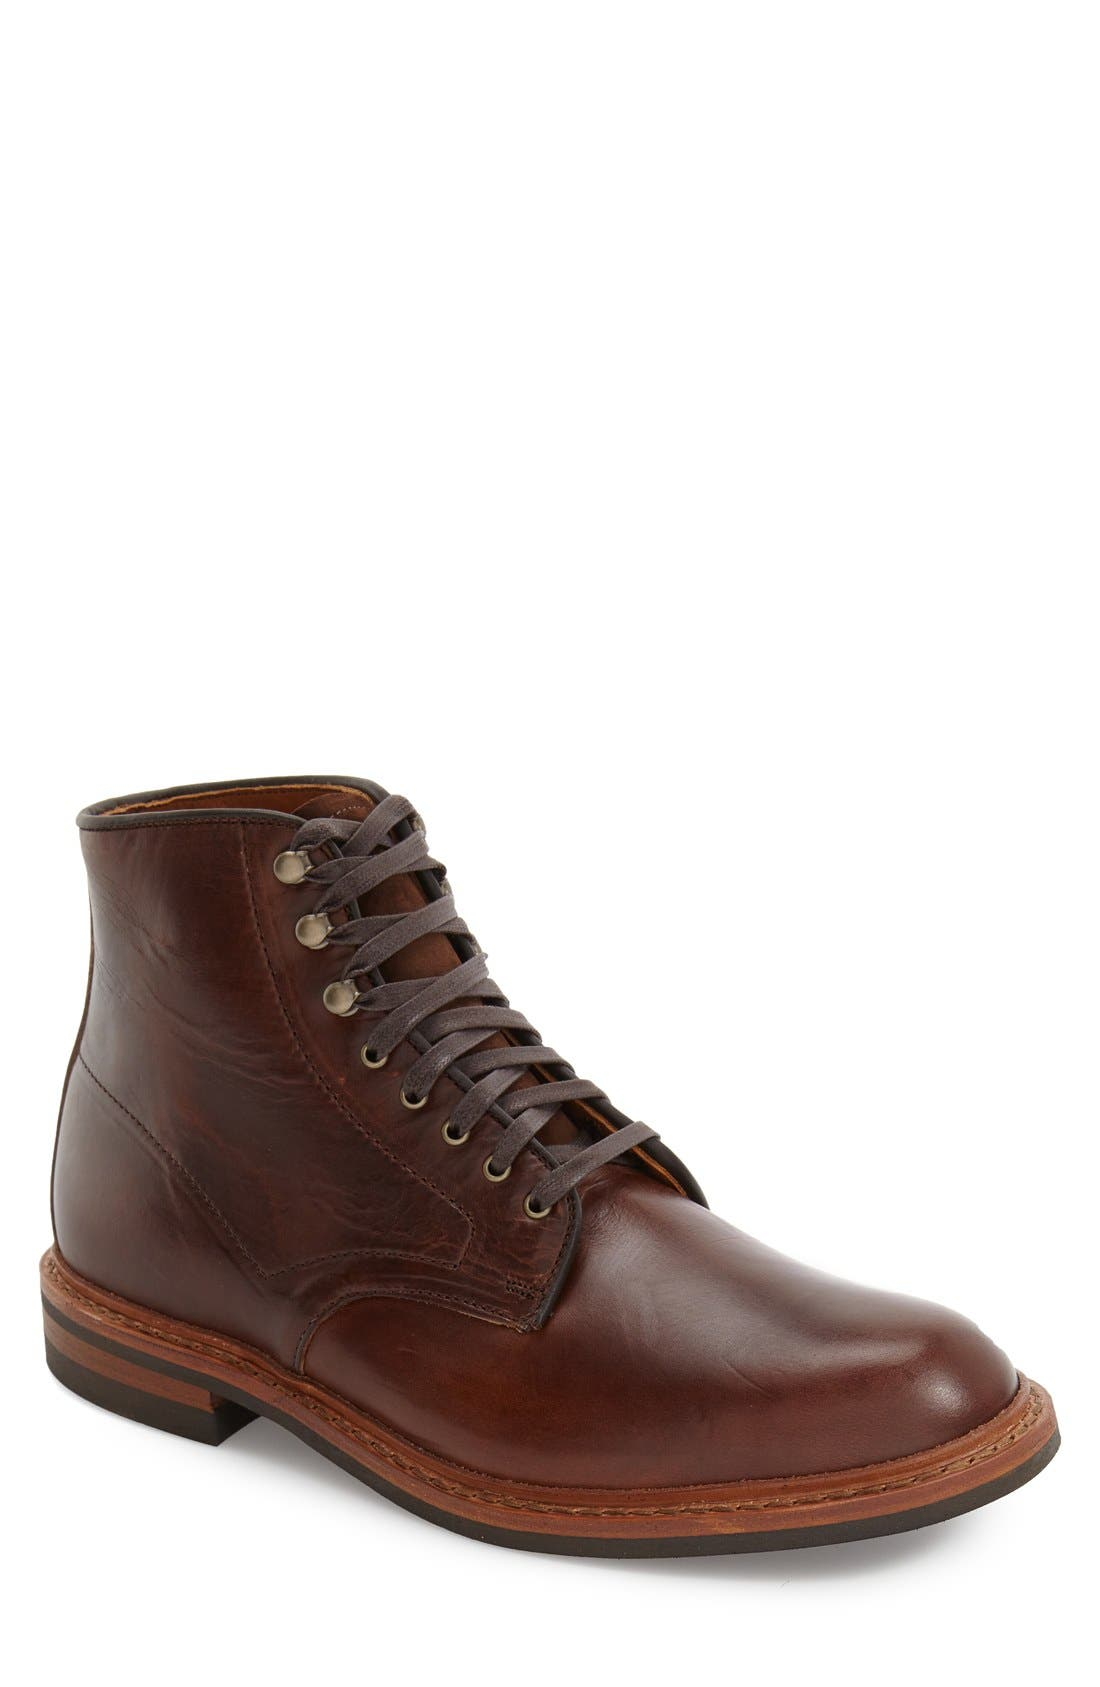 'Higgins Mill' Plain Toe Boot,                             Main thumbnail 1, color,                             BROWN LEATHER